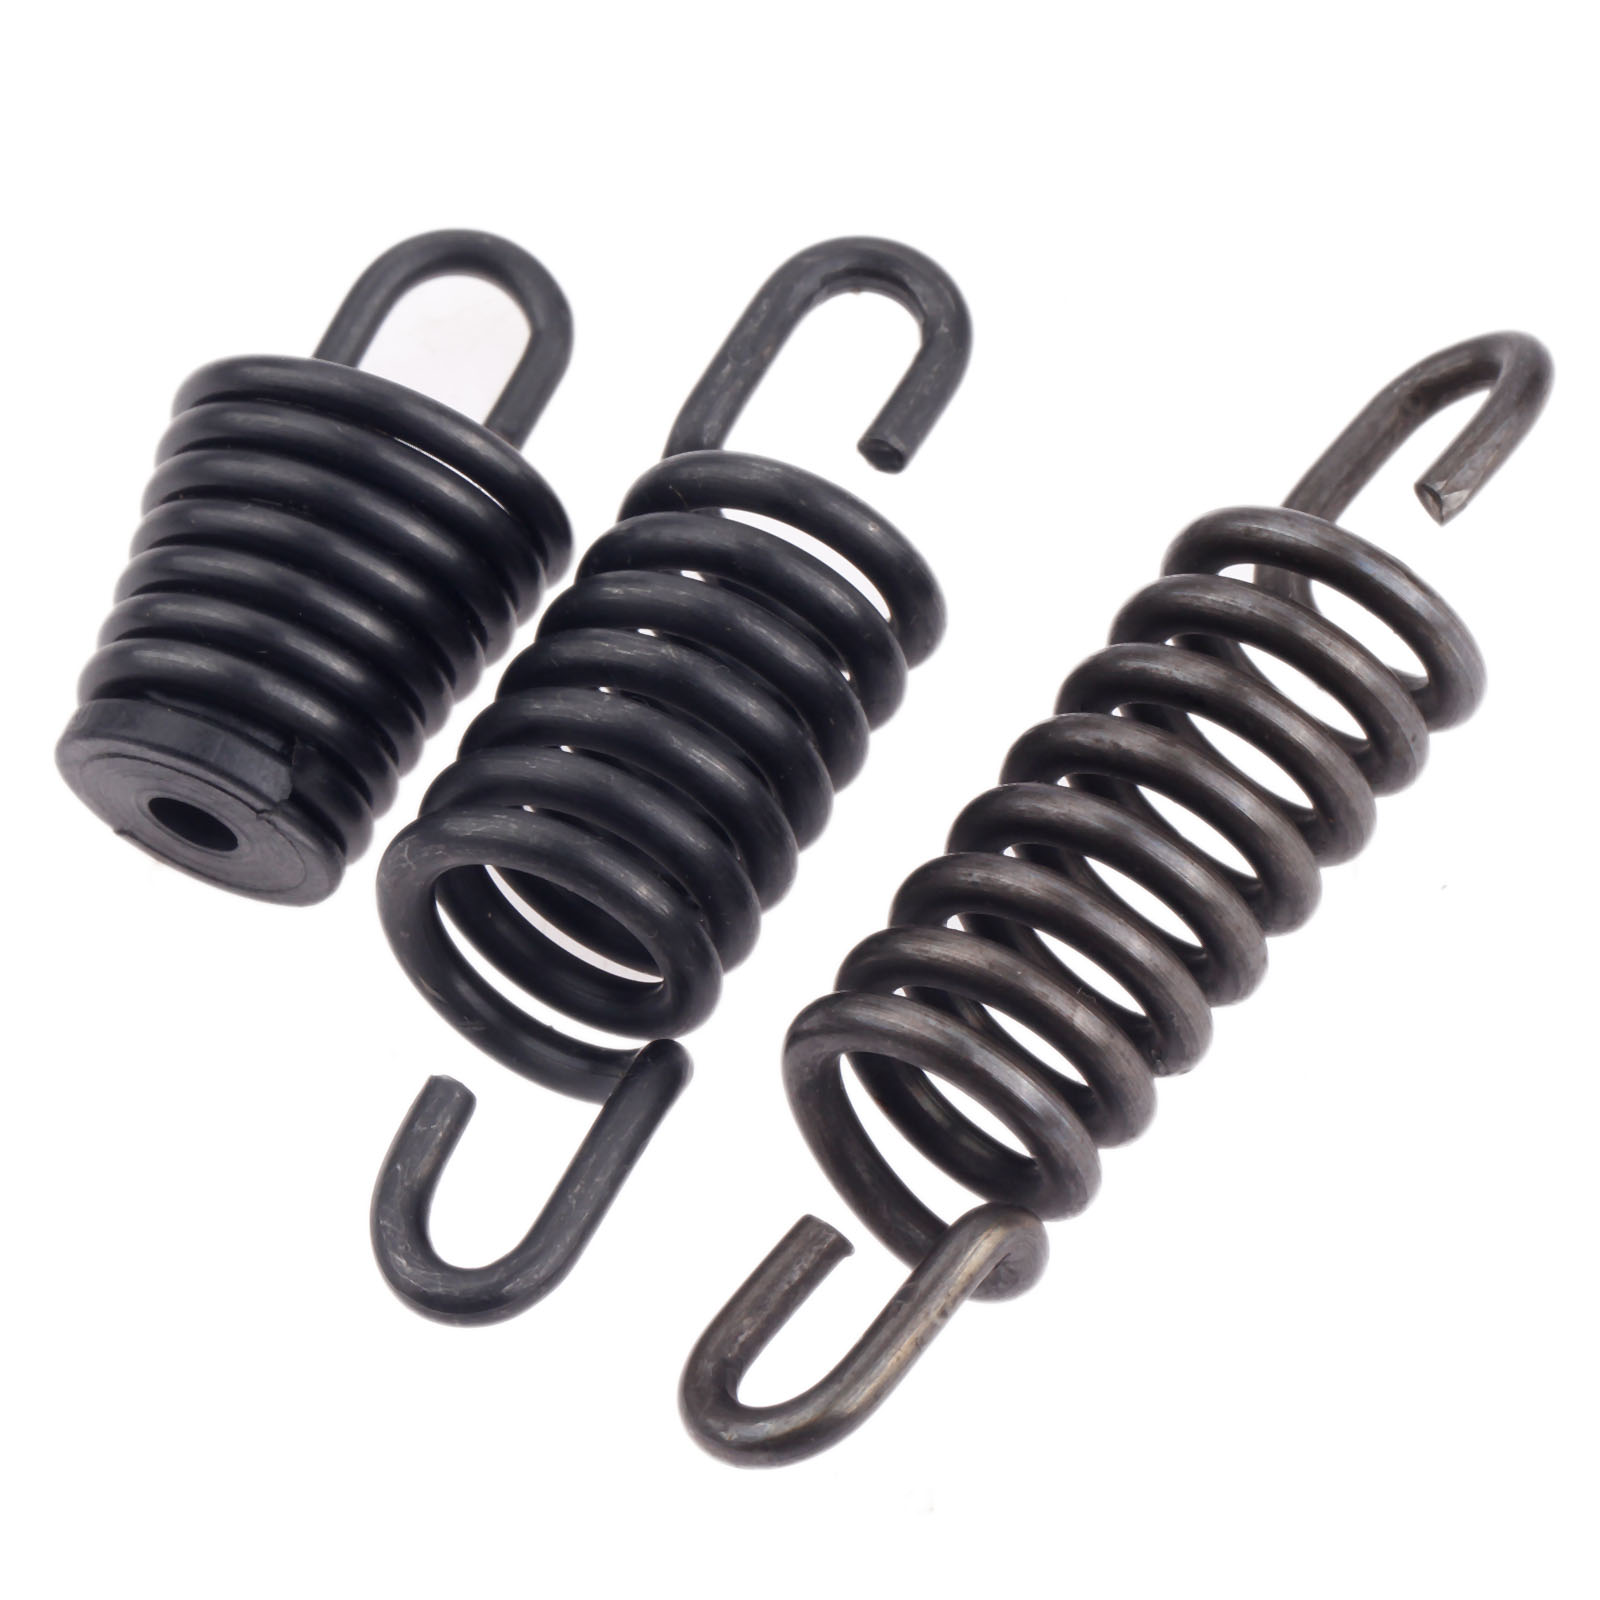 Dophee 3Pcs AV SPRING MOUNT SET TO FIT FOR PARTNER CHAINSAW 350 351 370 371 390 420 Garden Power Tools